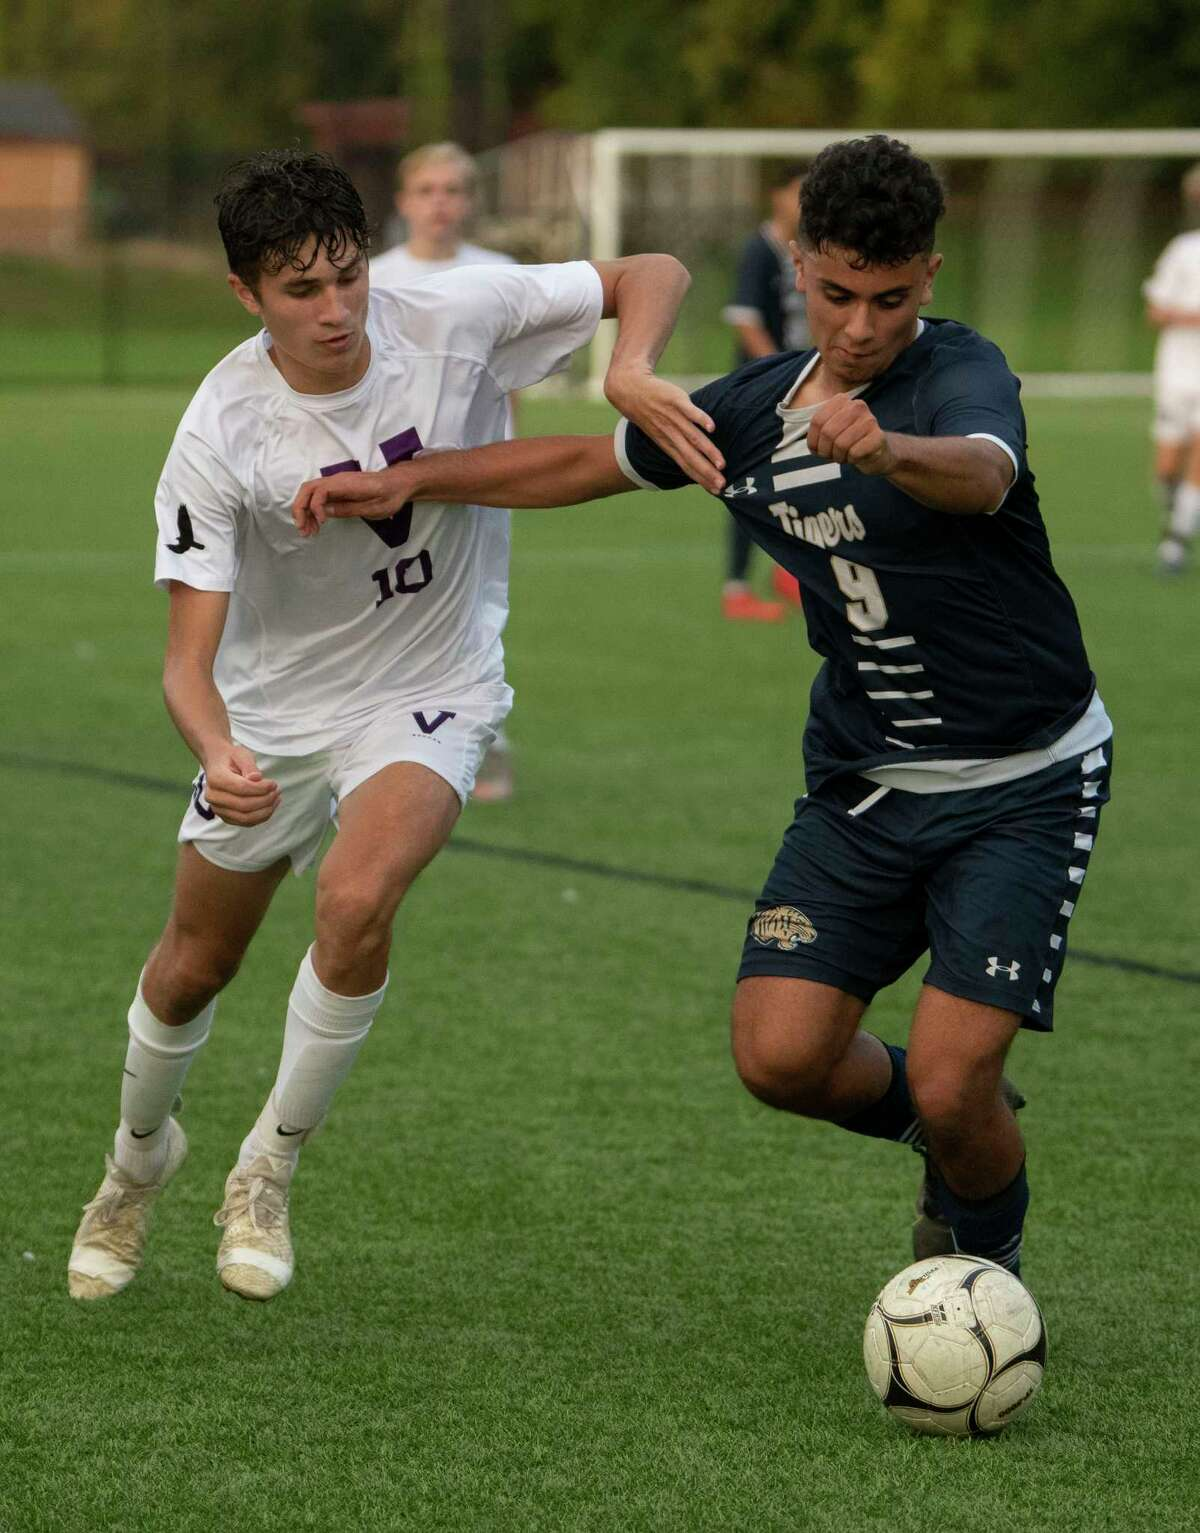 Voorheesville's Ryan McMillen, left, battles for the ball with Cohoes' Johnny Martinez-Peraza during the Colonial Council tournament boys' soccer game on Wednesday, Oct, 13, 2021 in Troy, N.Y.